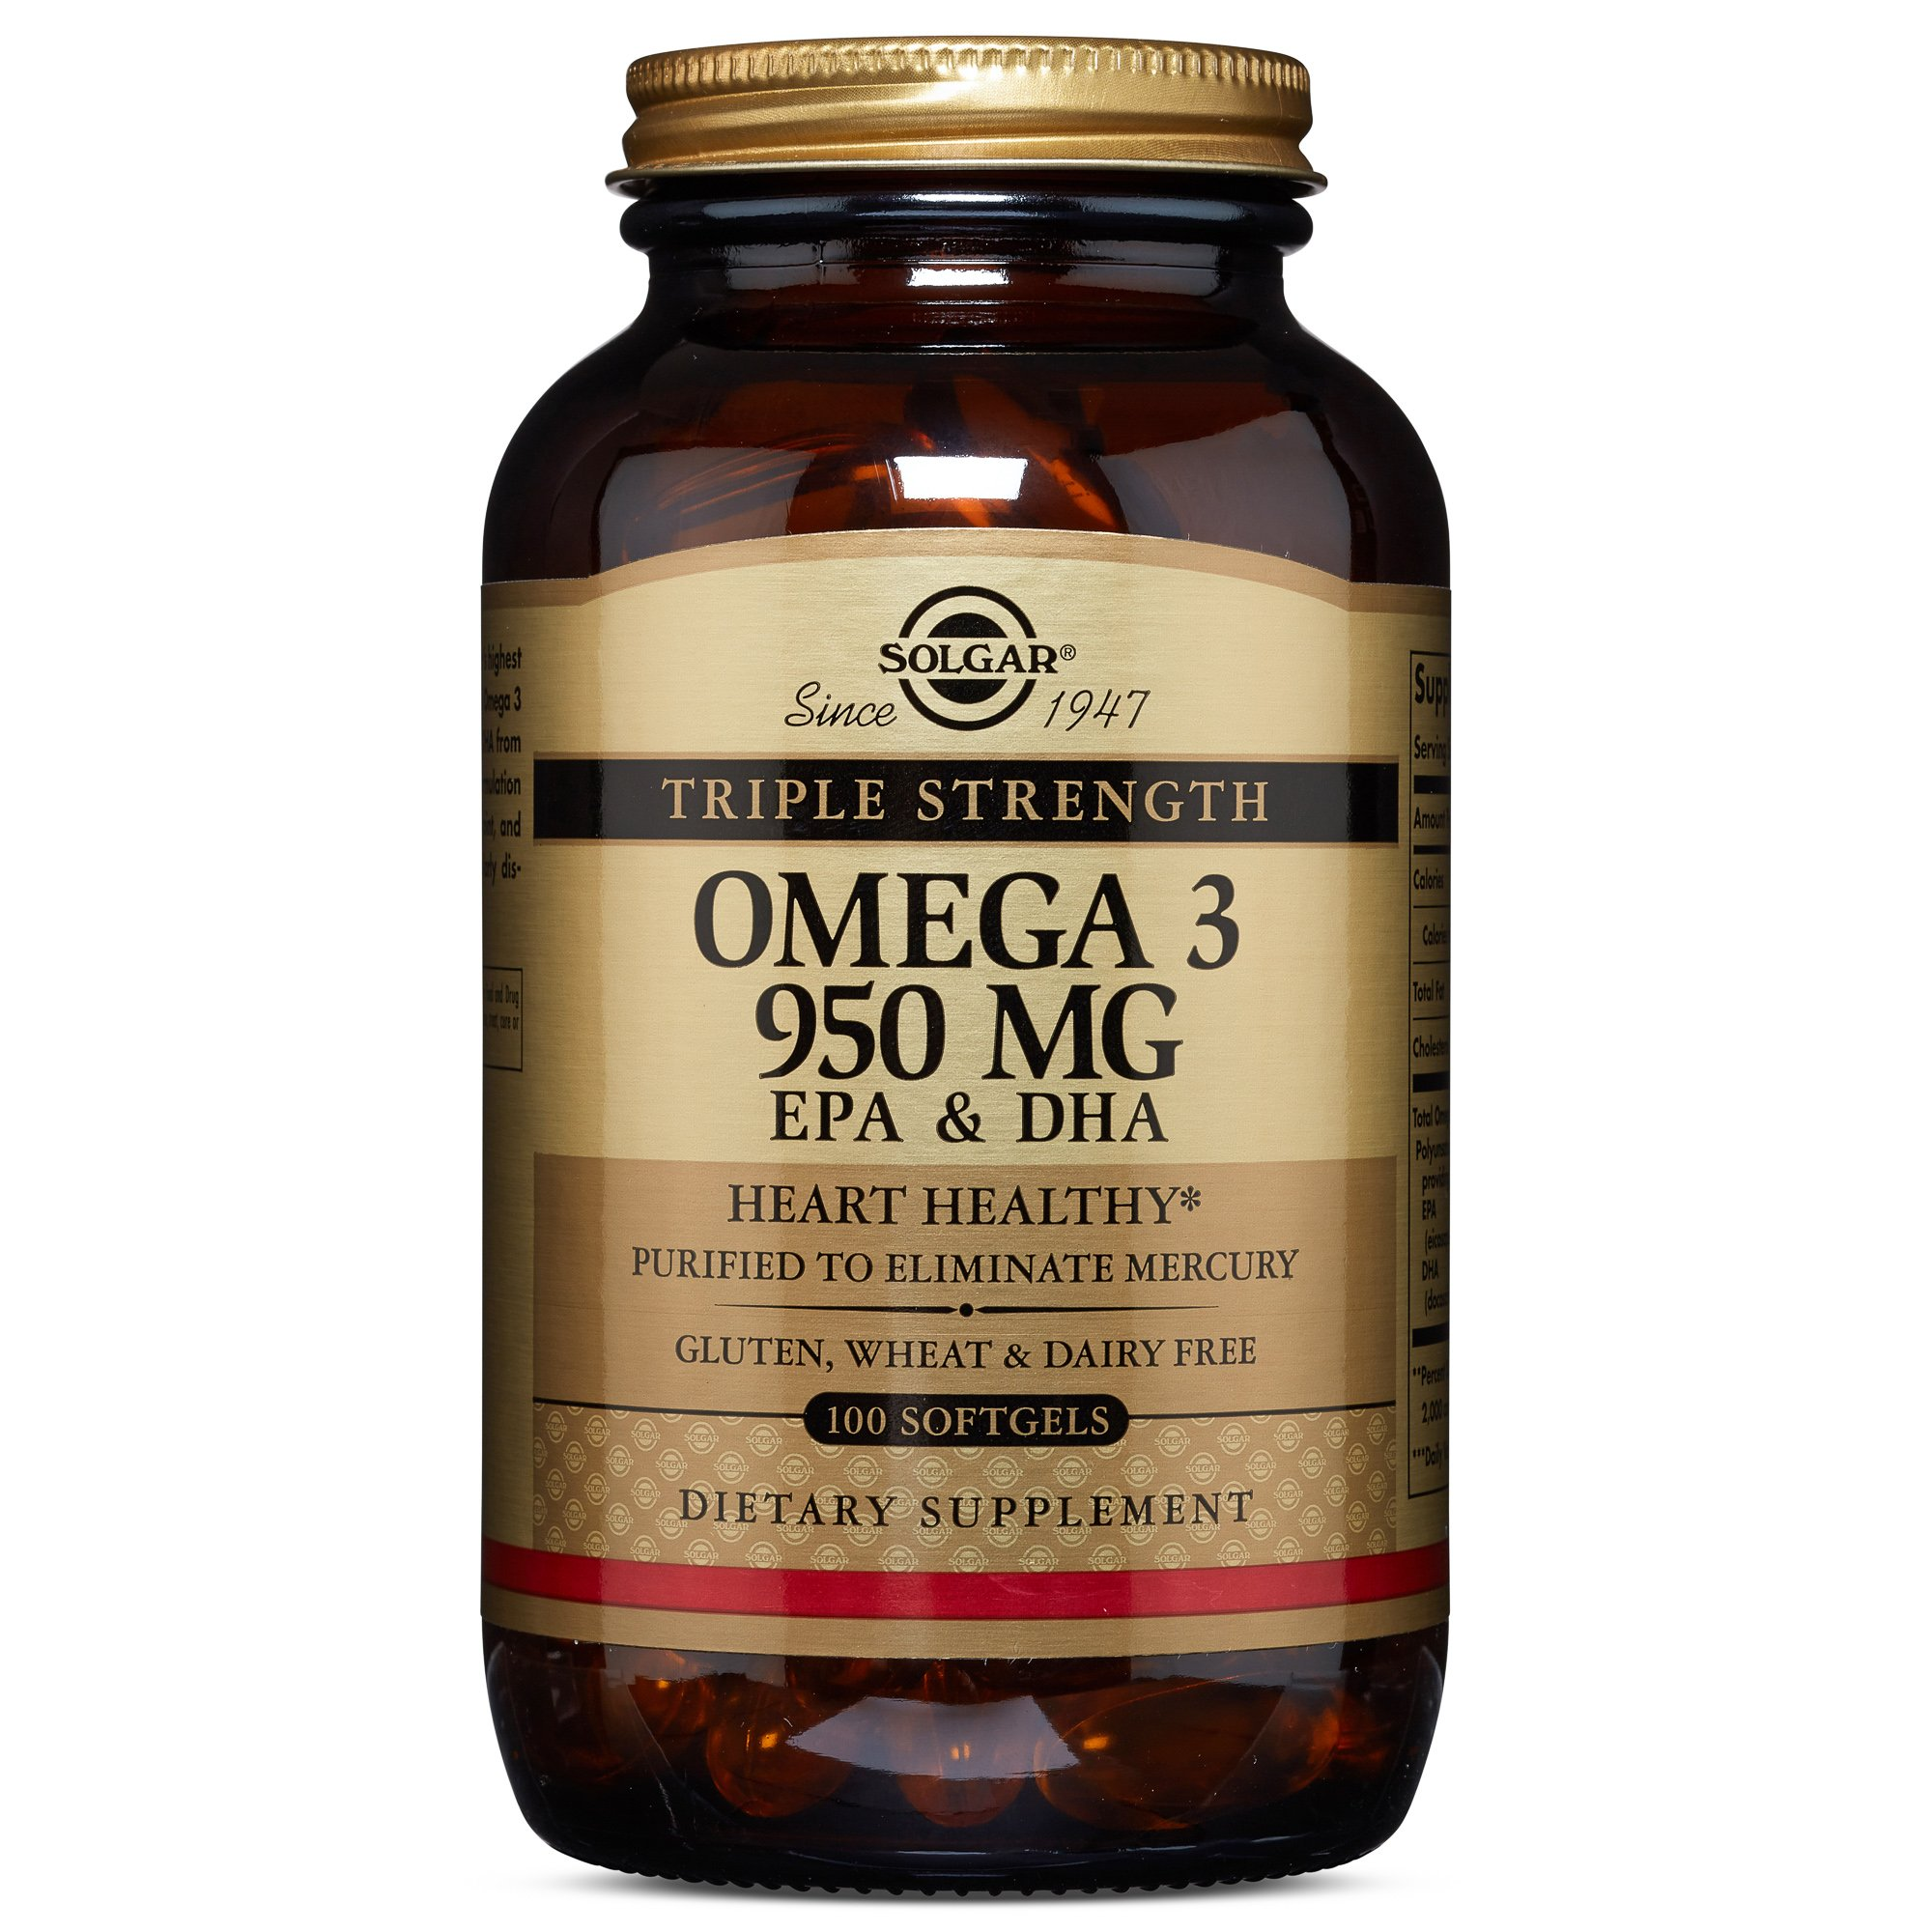 Solgar - Triple Strength Omega 3 EPA & DHA 950 Mg, 100 Softgels by Solgar